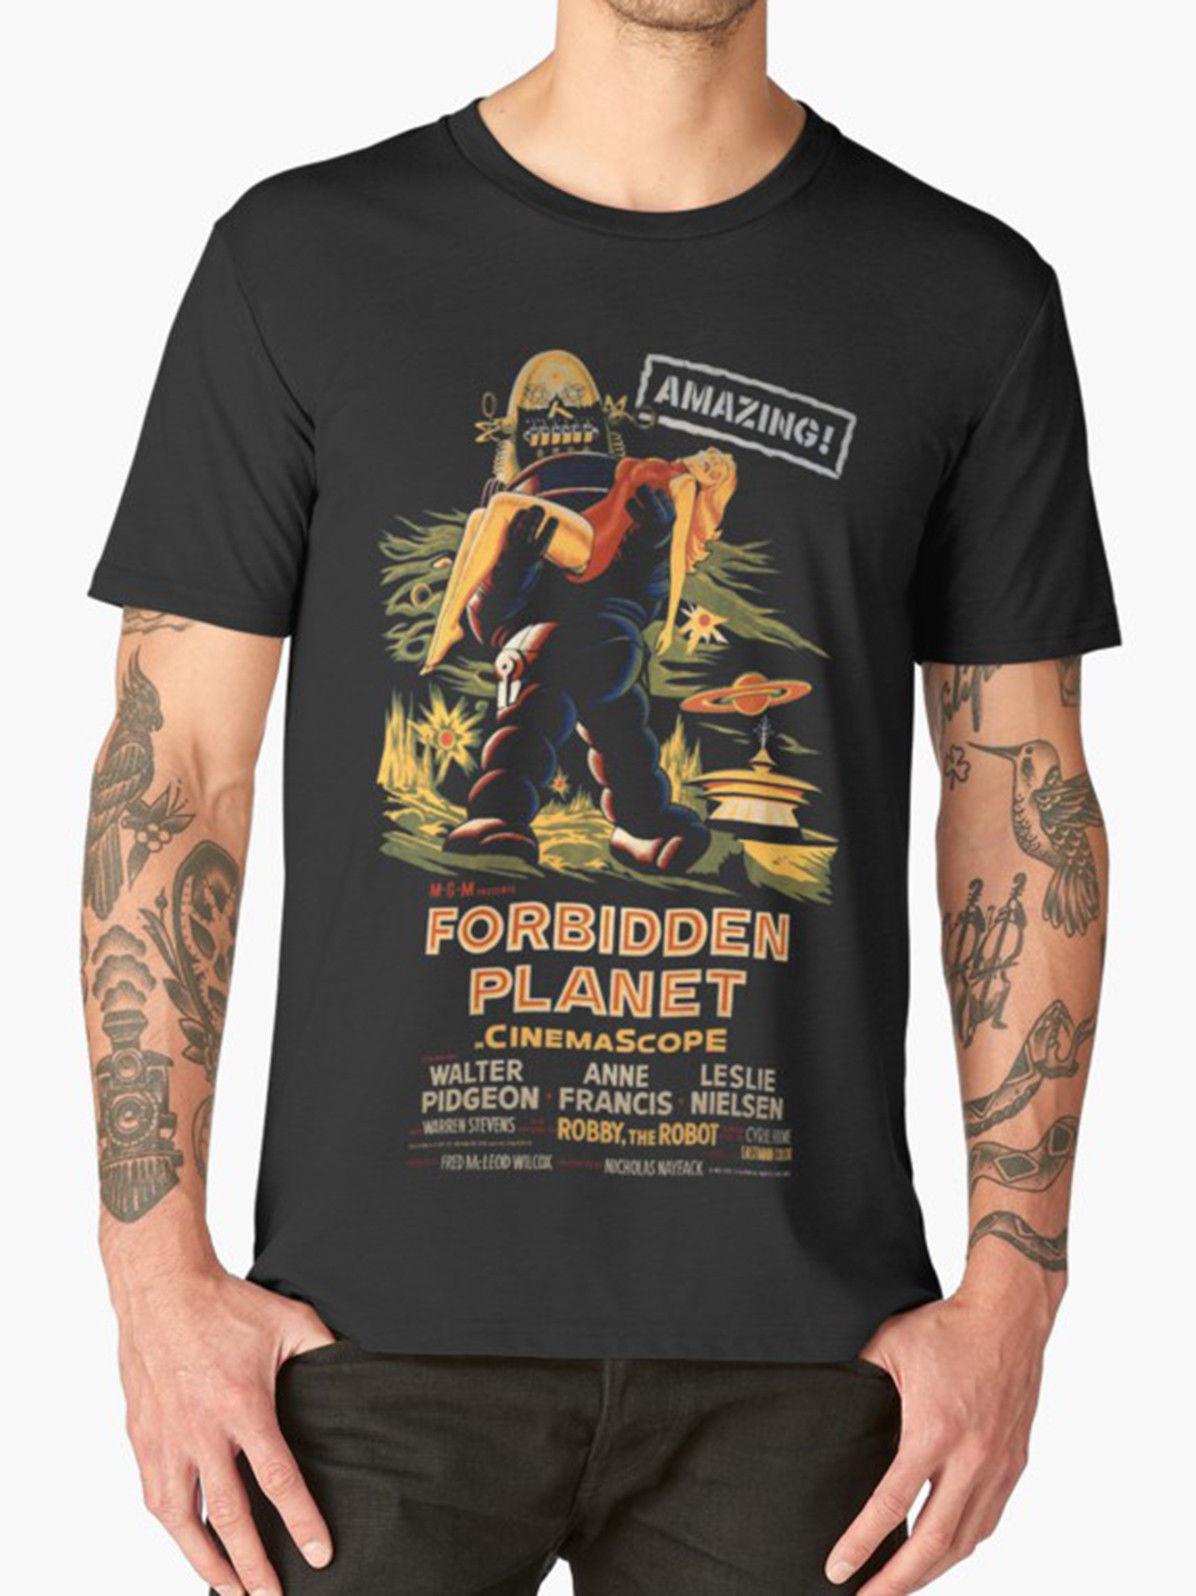 FORBIDDEN PLANET T SHIRT MOVIE FILM VINTAGE RETRO CULT HORROR New T Shirts Funny Tops Tee New Unisex Funny Tops free shipping